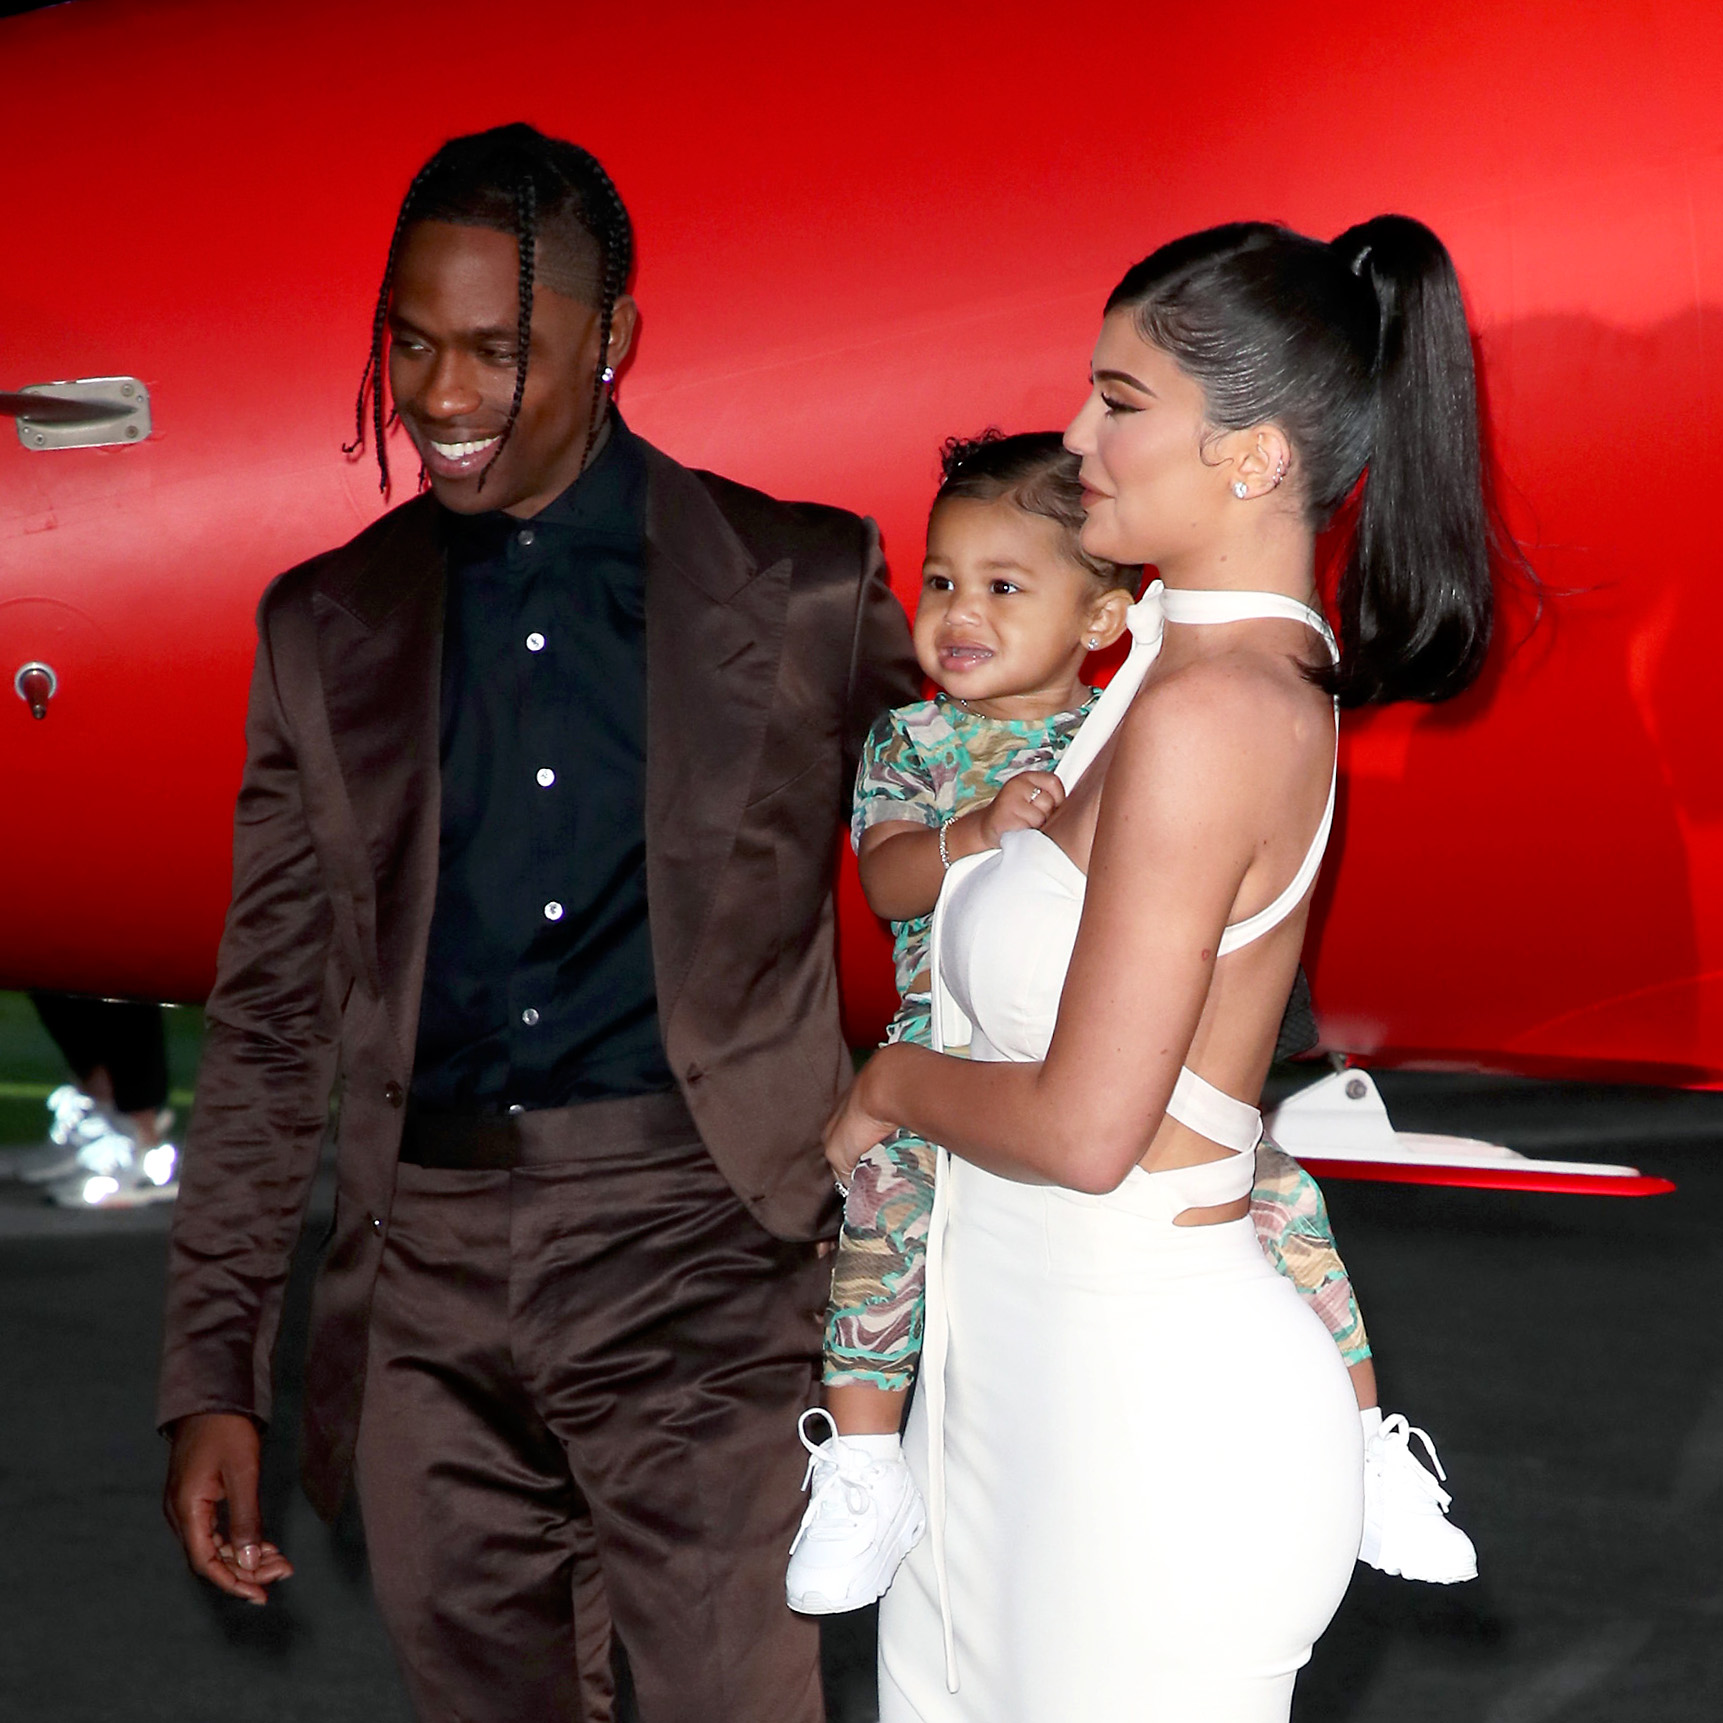 Travis Scott, Stormi Webster, and Kylie Jenner